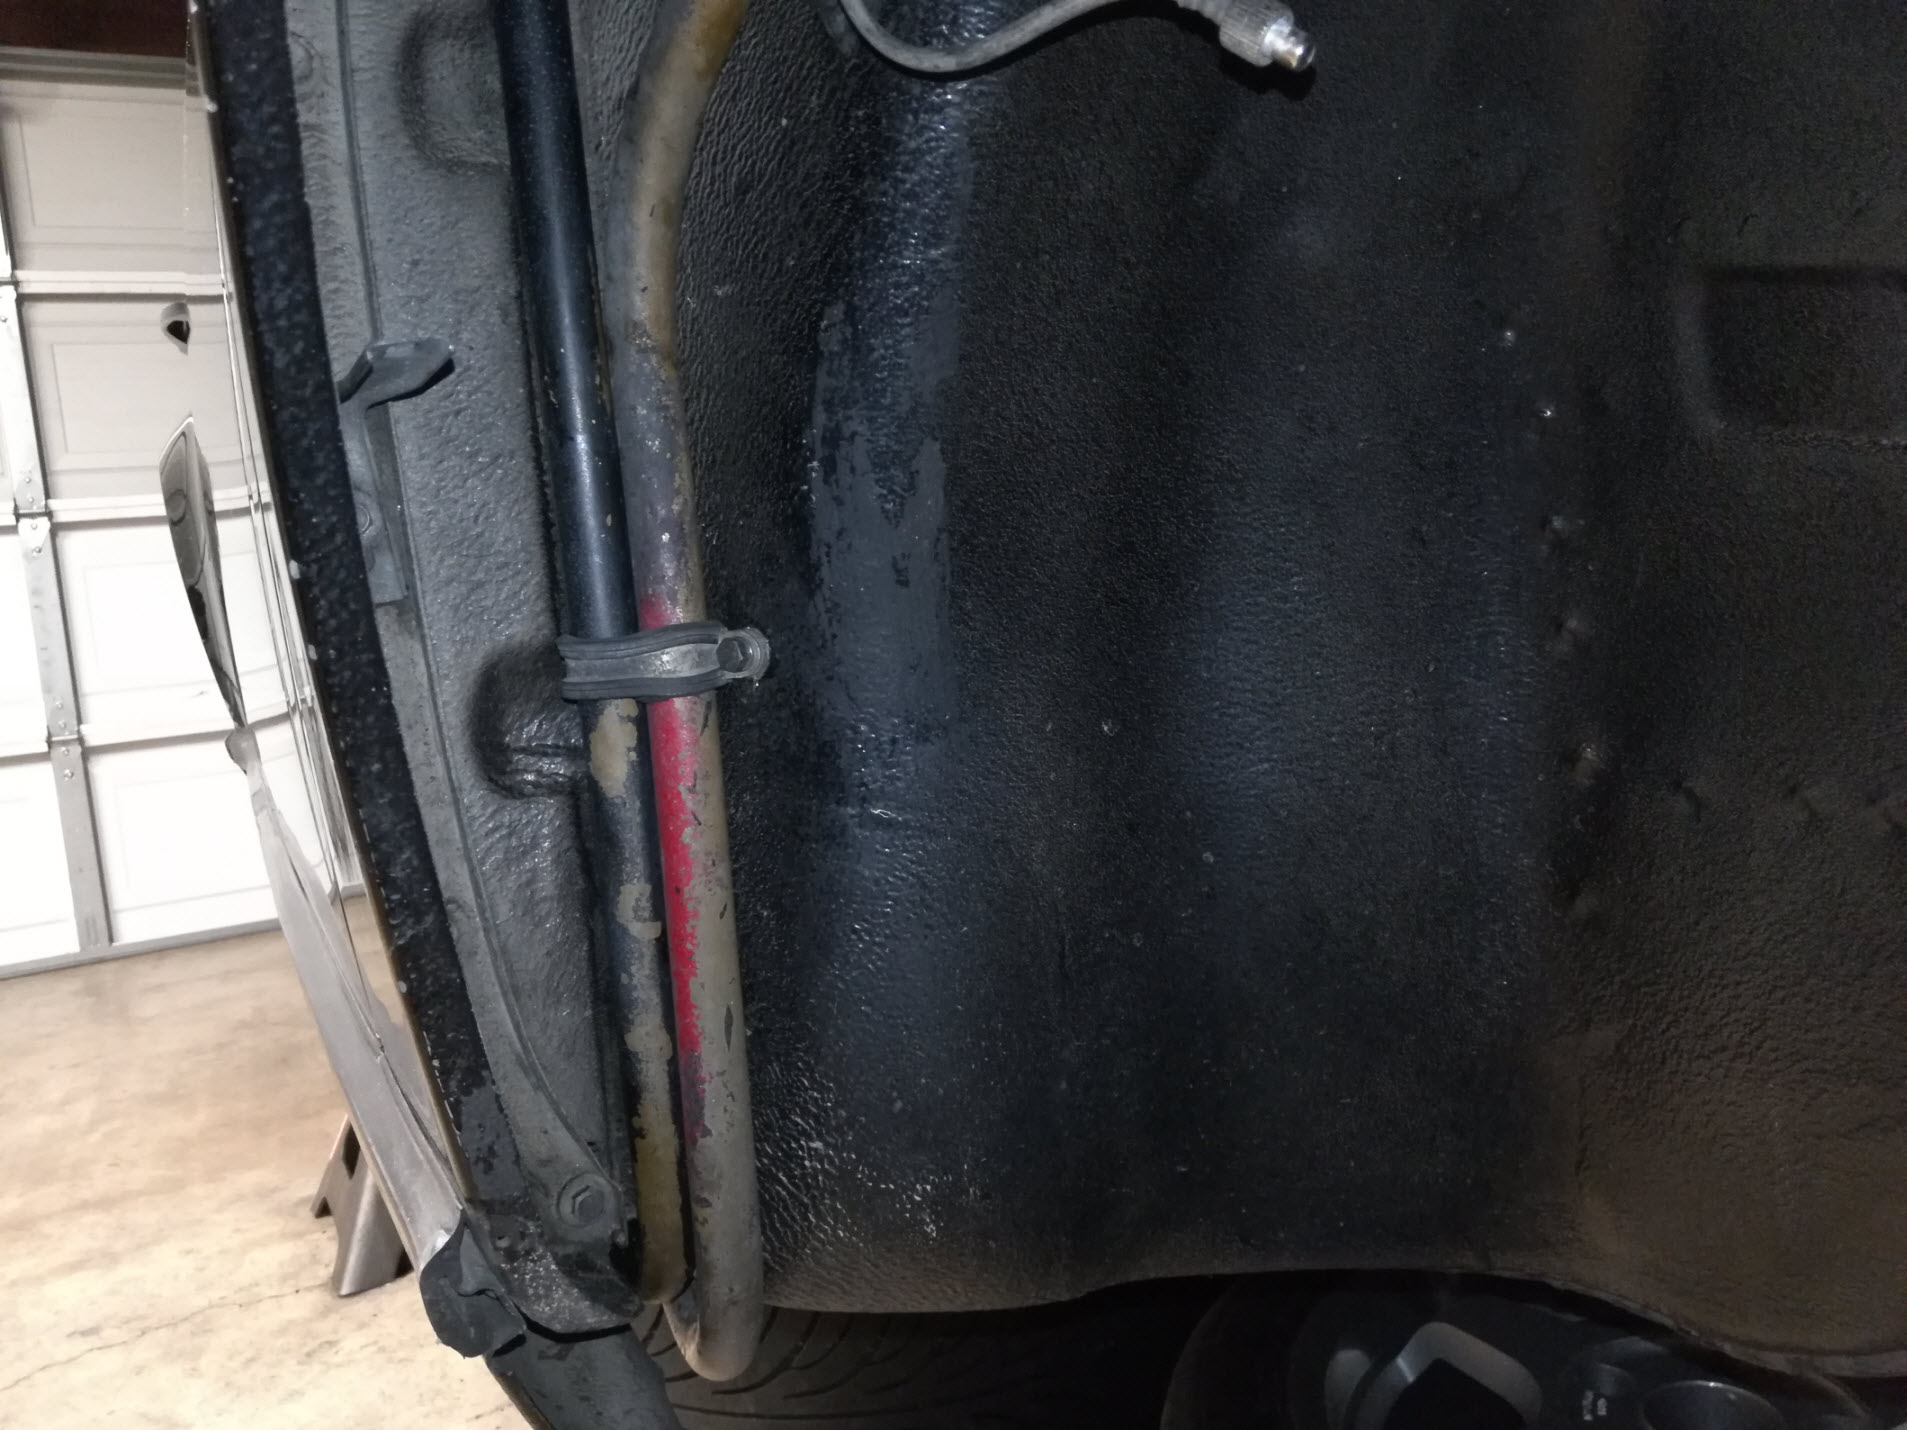 Air-cooled Porsche 911 hard oil line clamp under front fender well.